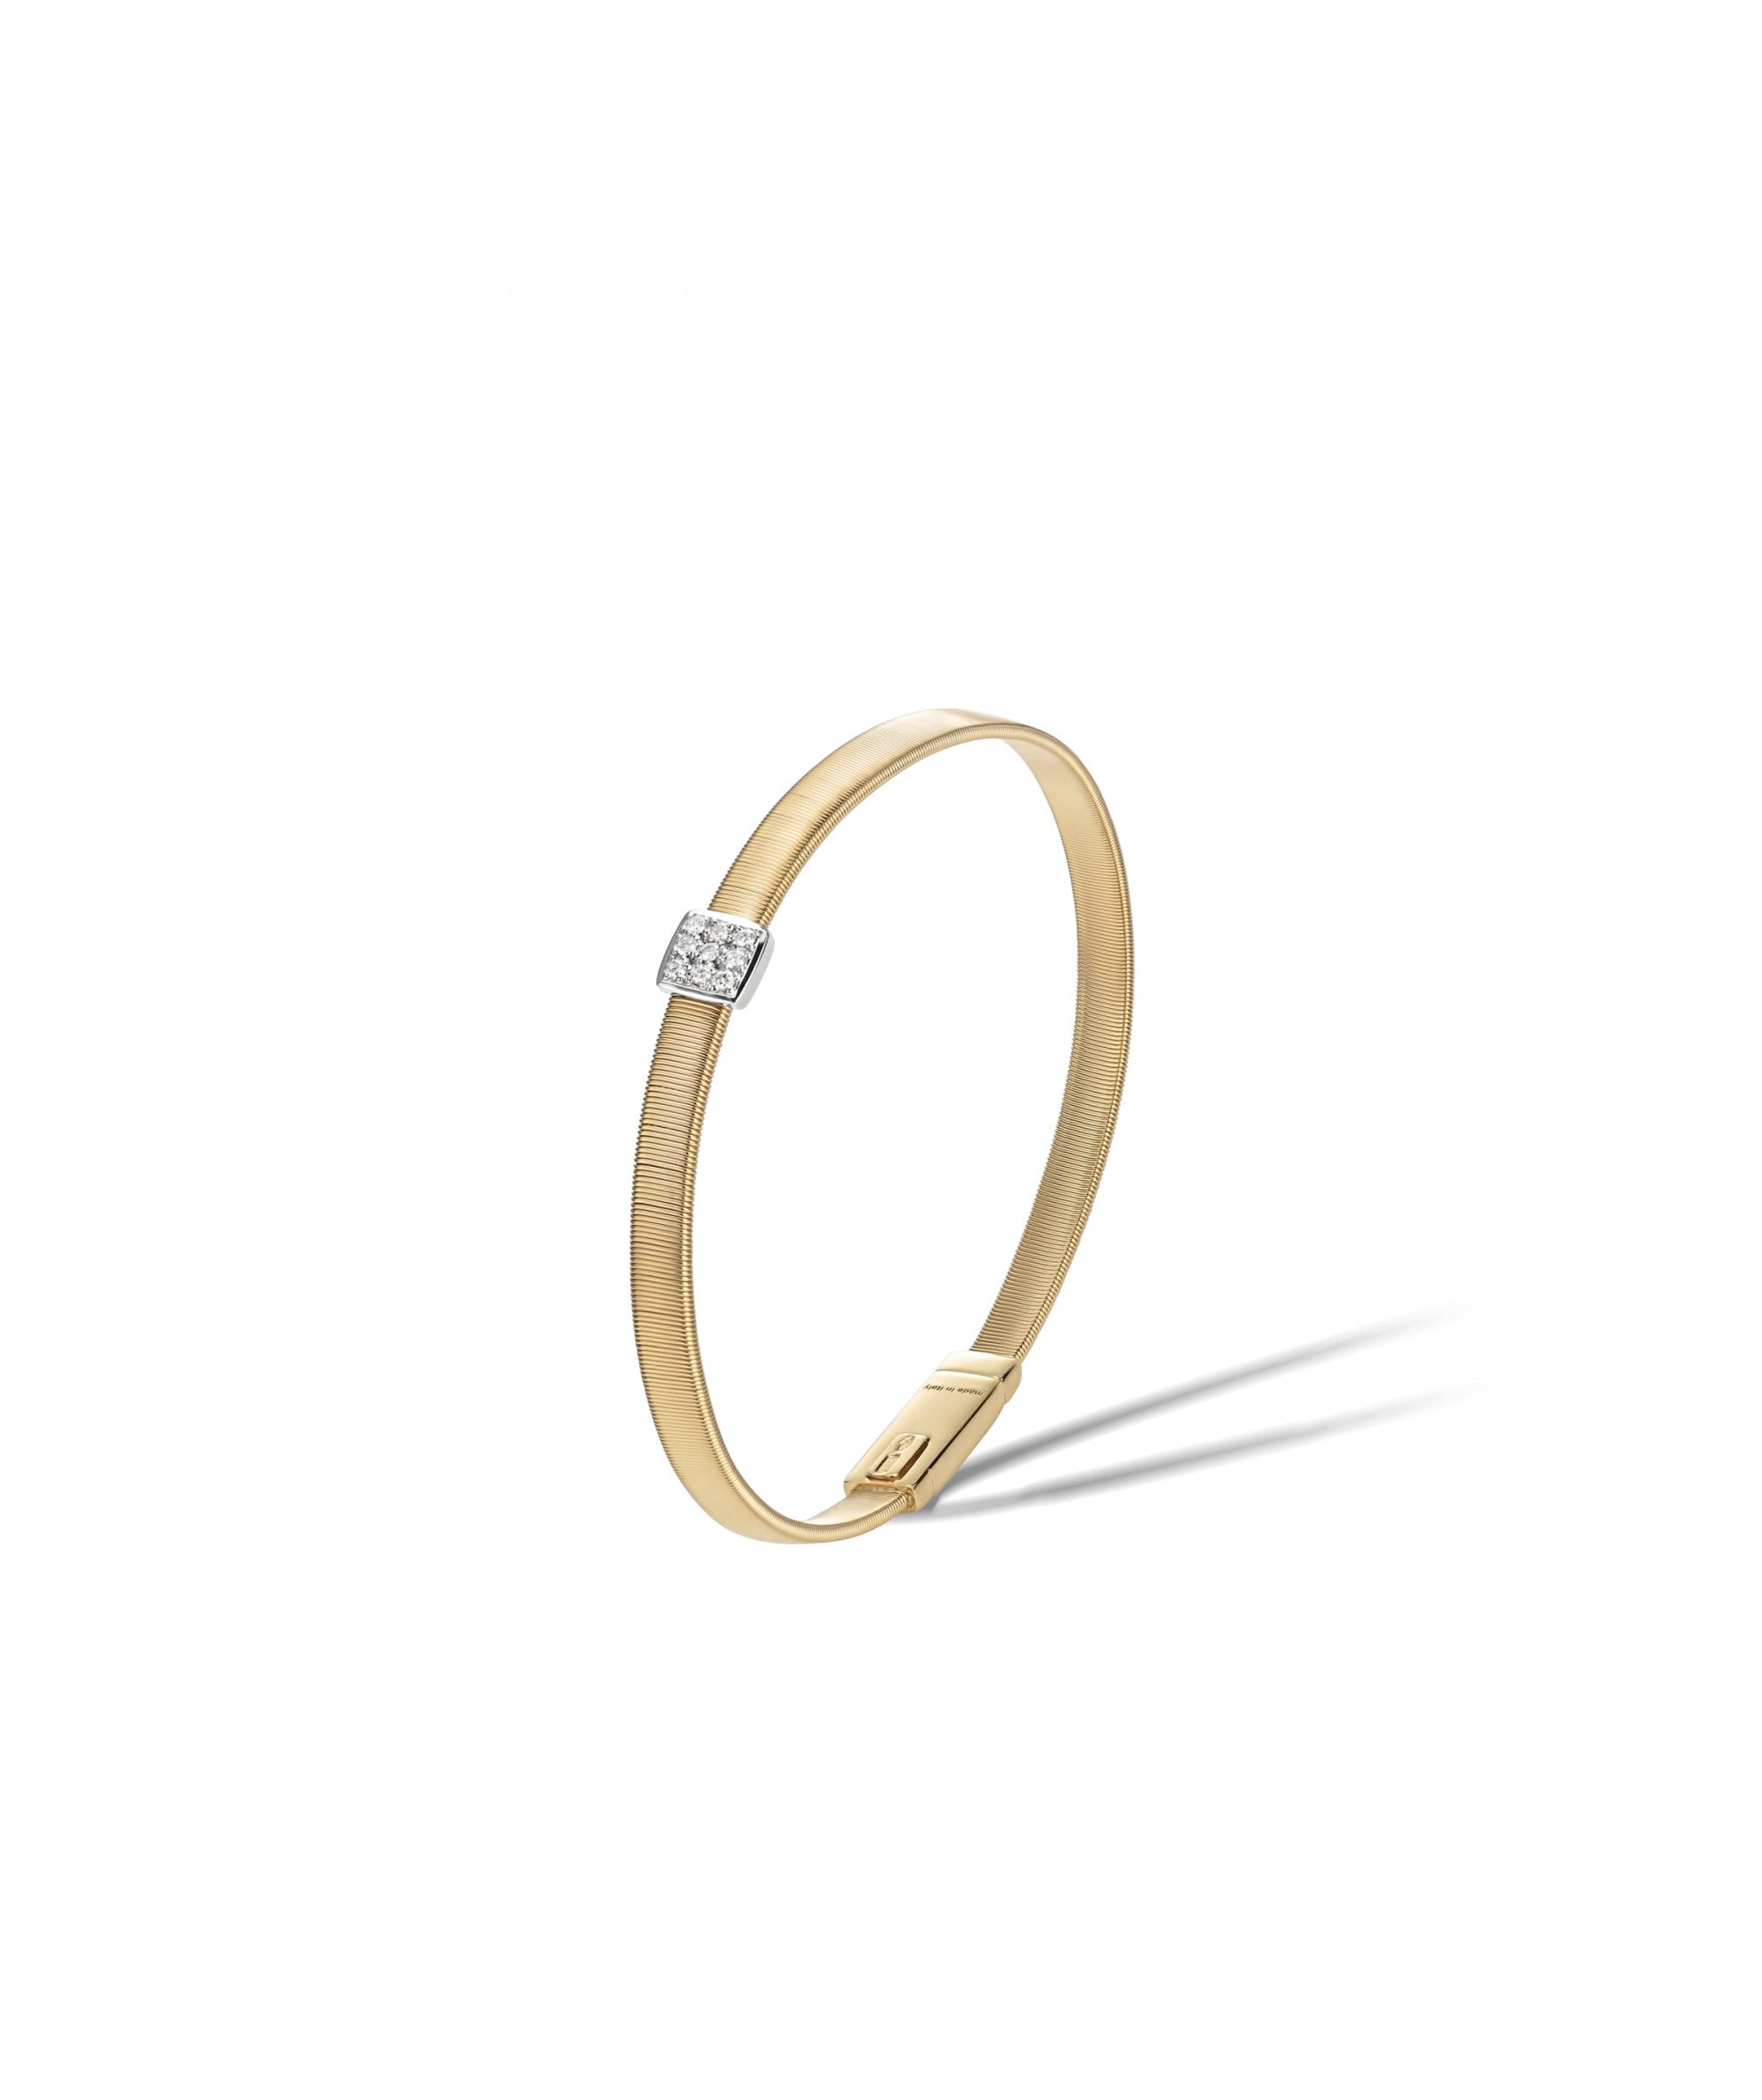 Masai Bracelet in 18k Yellow Gold with Pave Diamonds Single Strand - Orsini Jewellers NZ